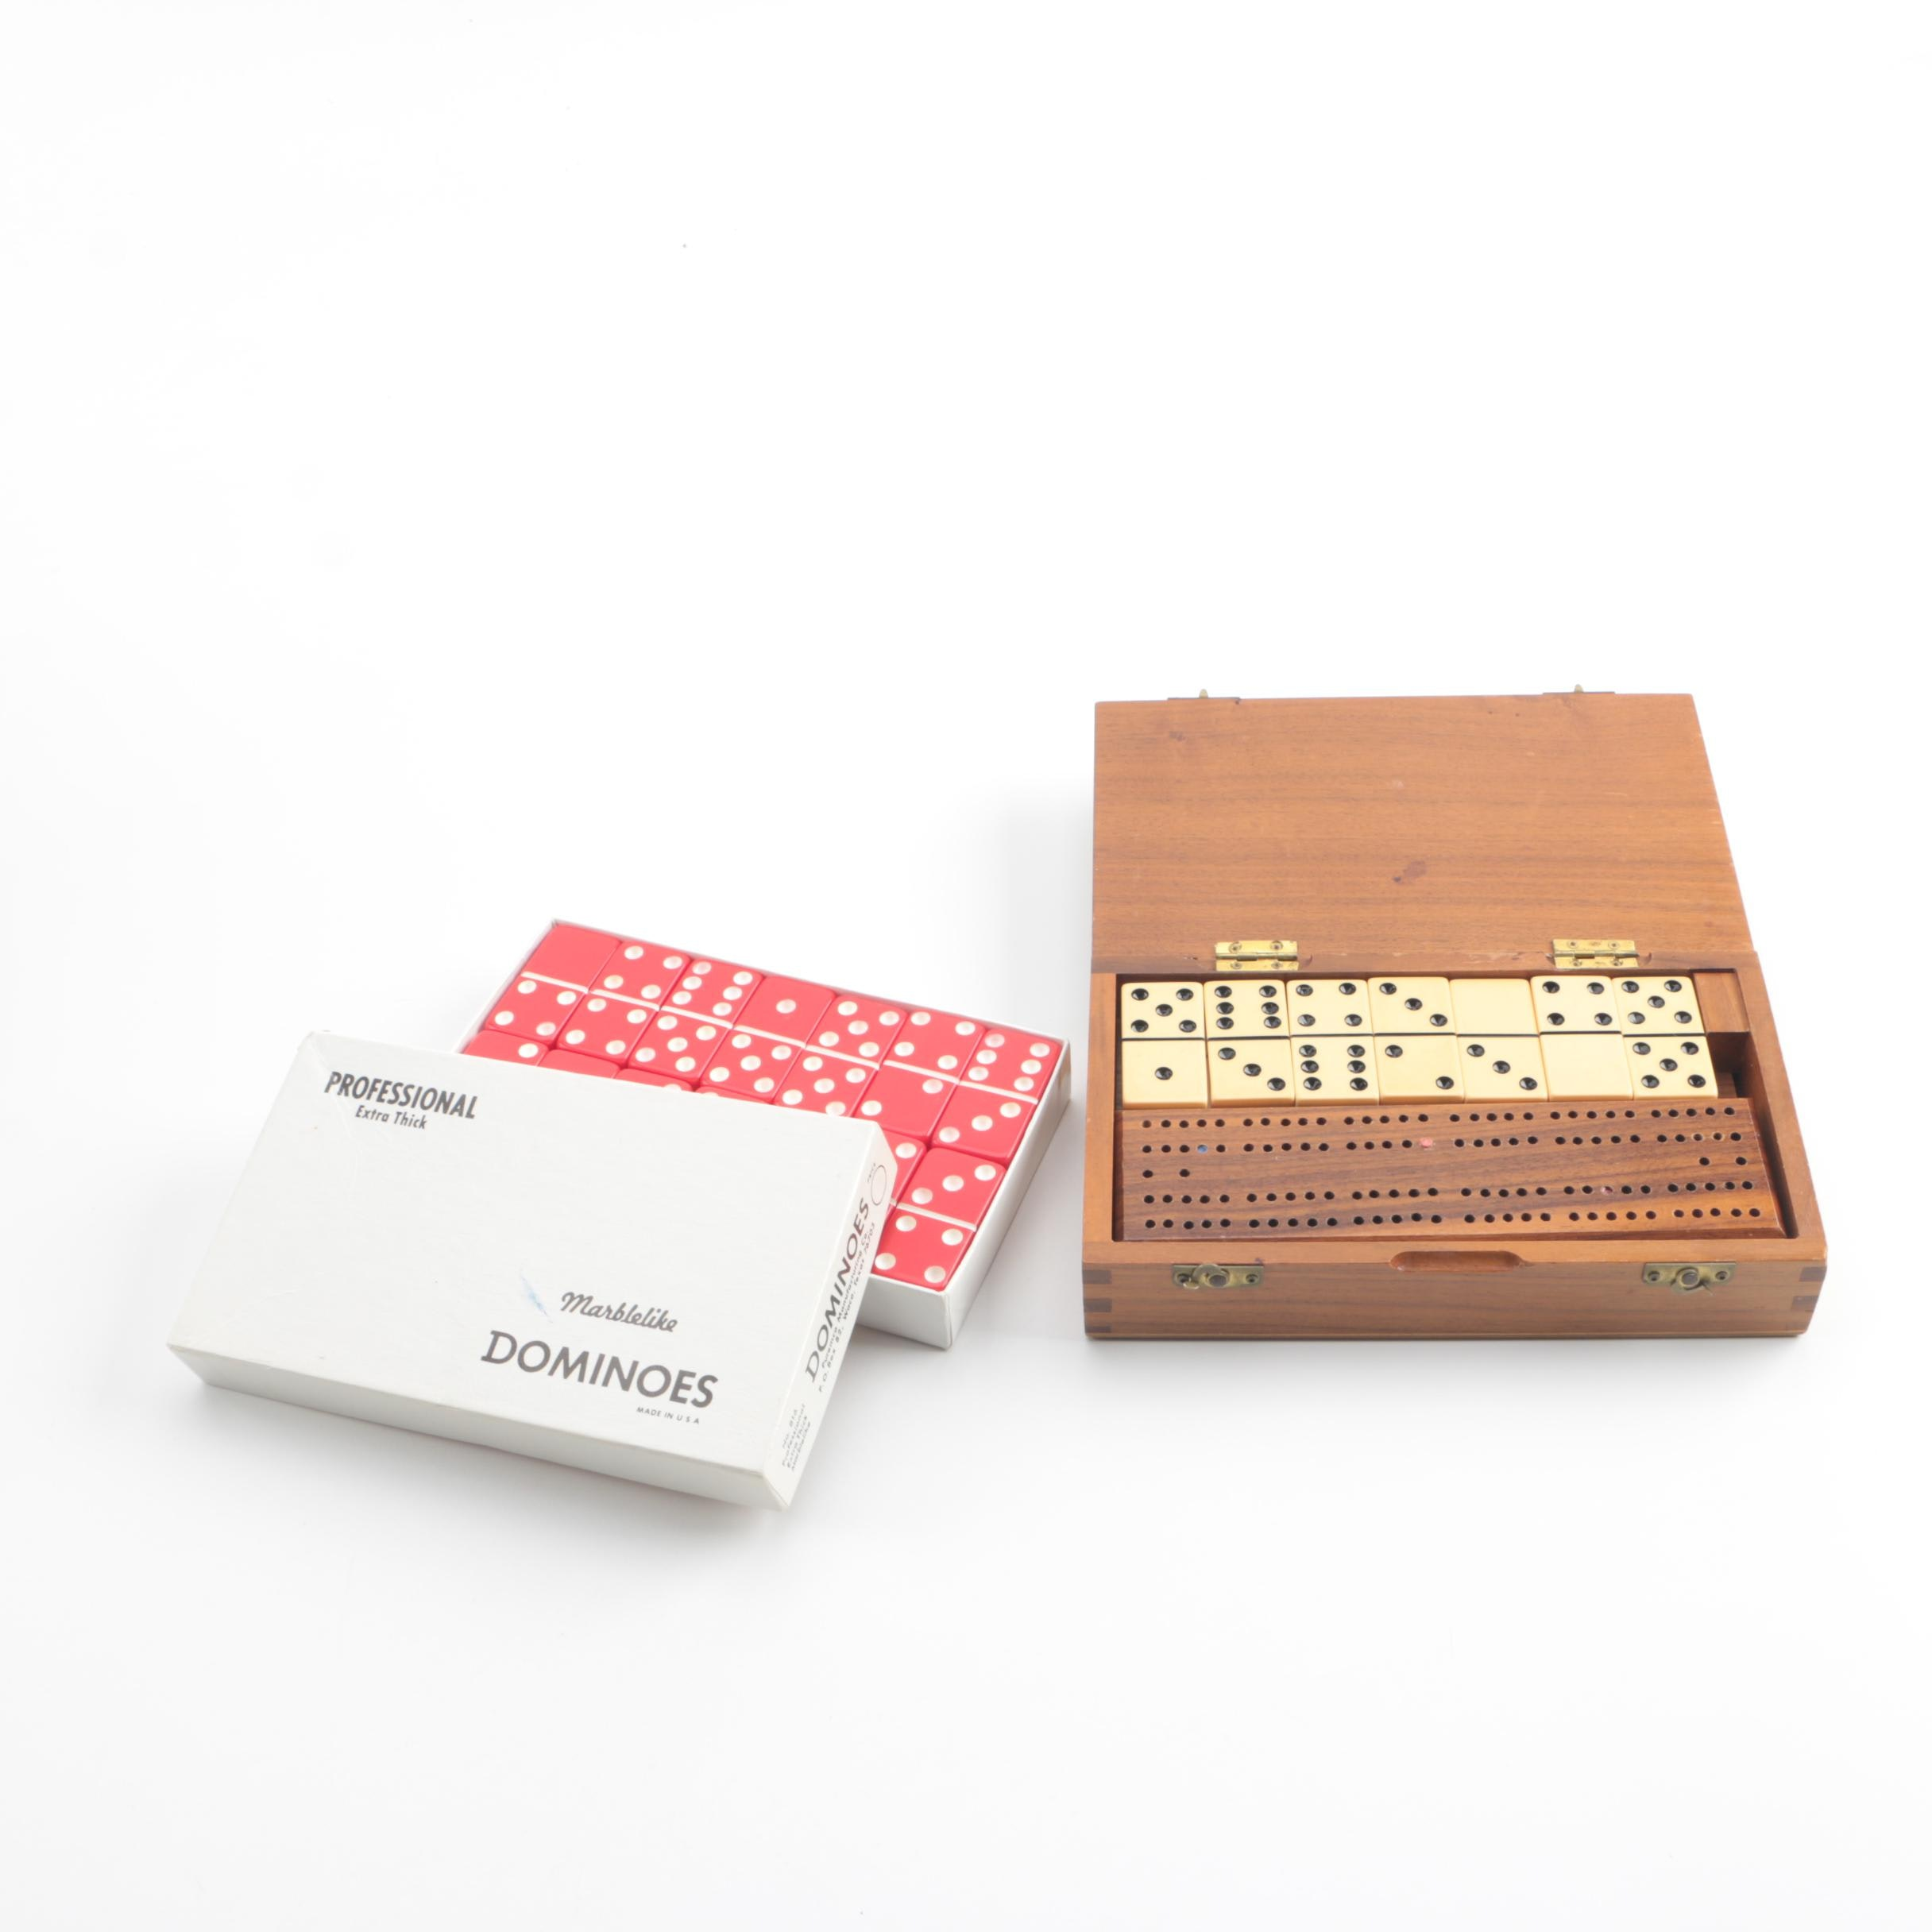 "Puremco ""Marblelike"" and Drueke Dominoes Sets"